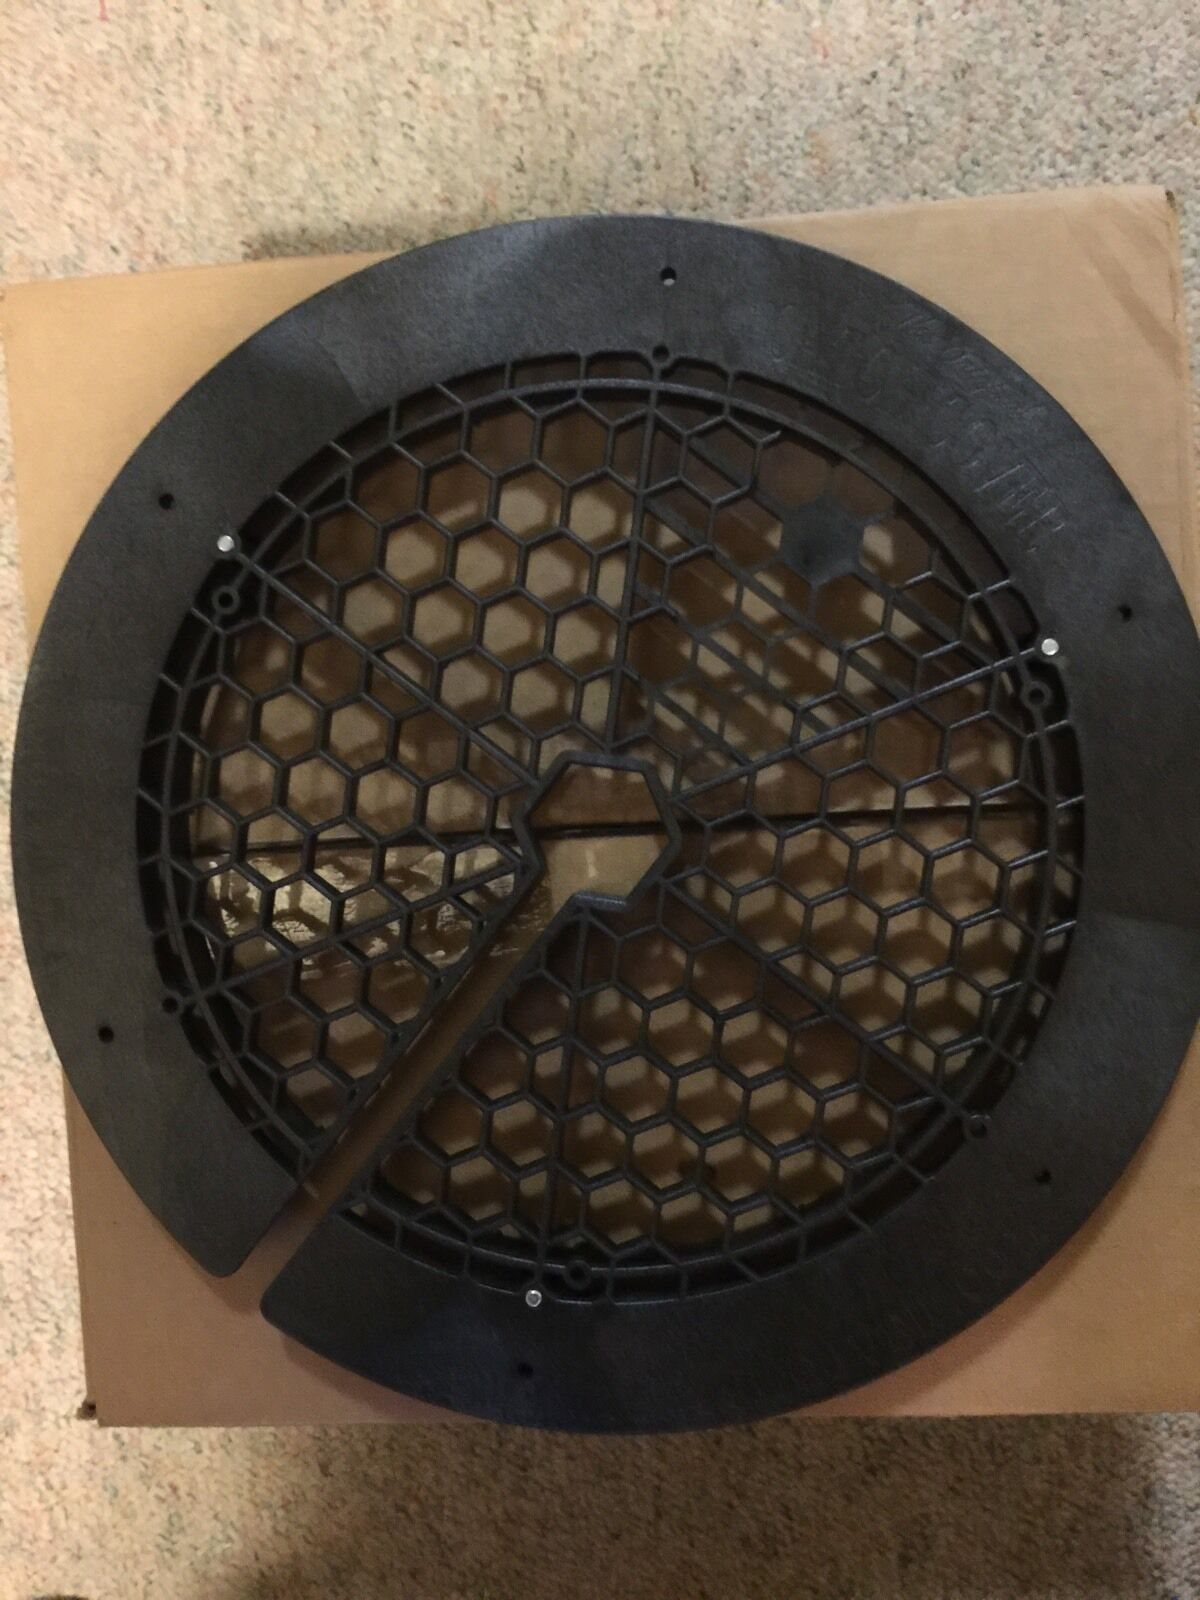 4  Catch Cover Safety Grill Hole Cover Ice Fishing Predects Valuables & Kids CC09  outlet factory shop